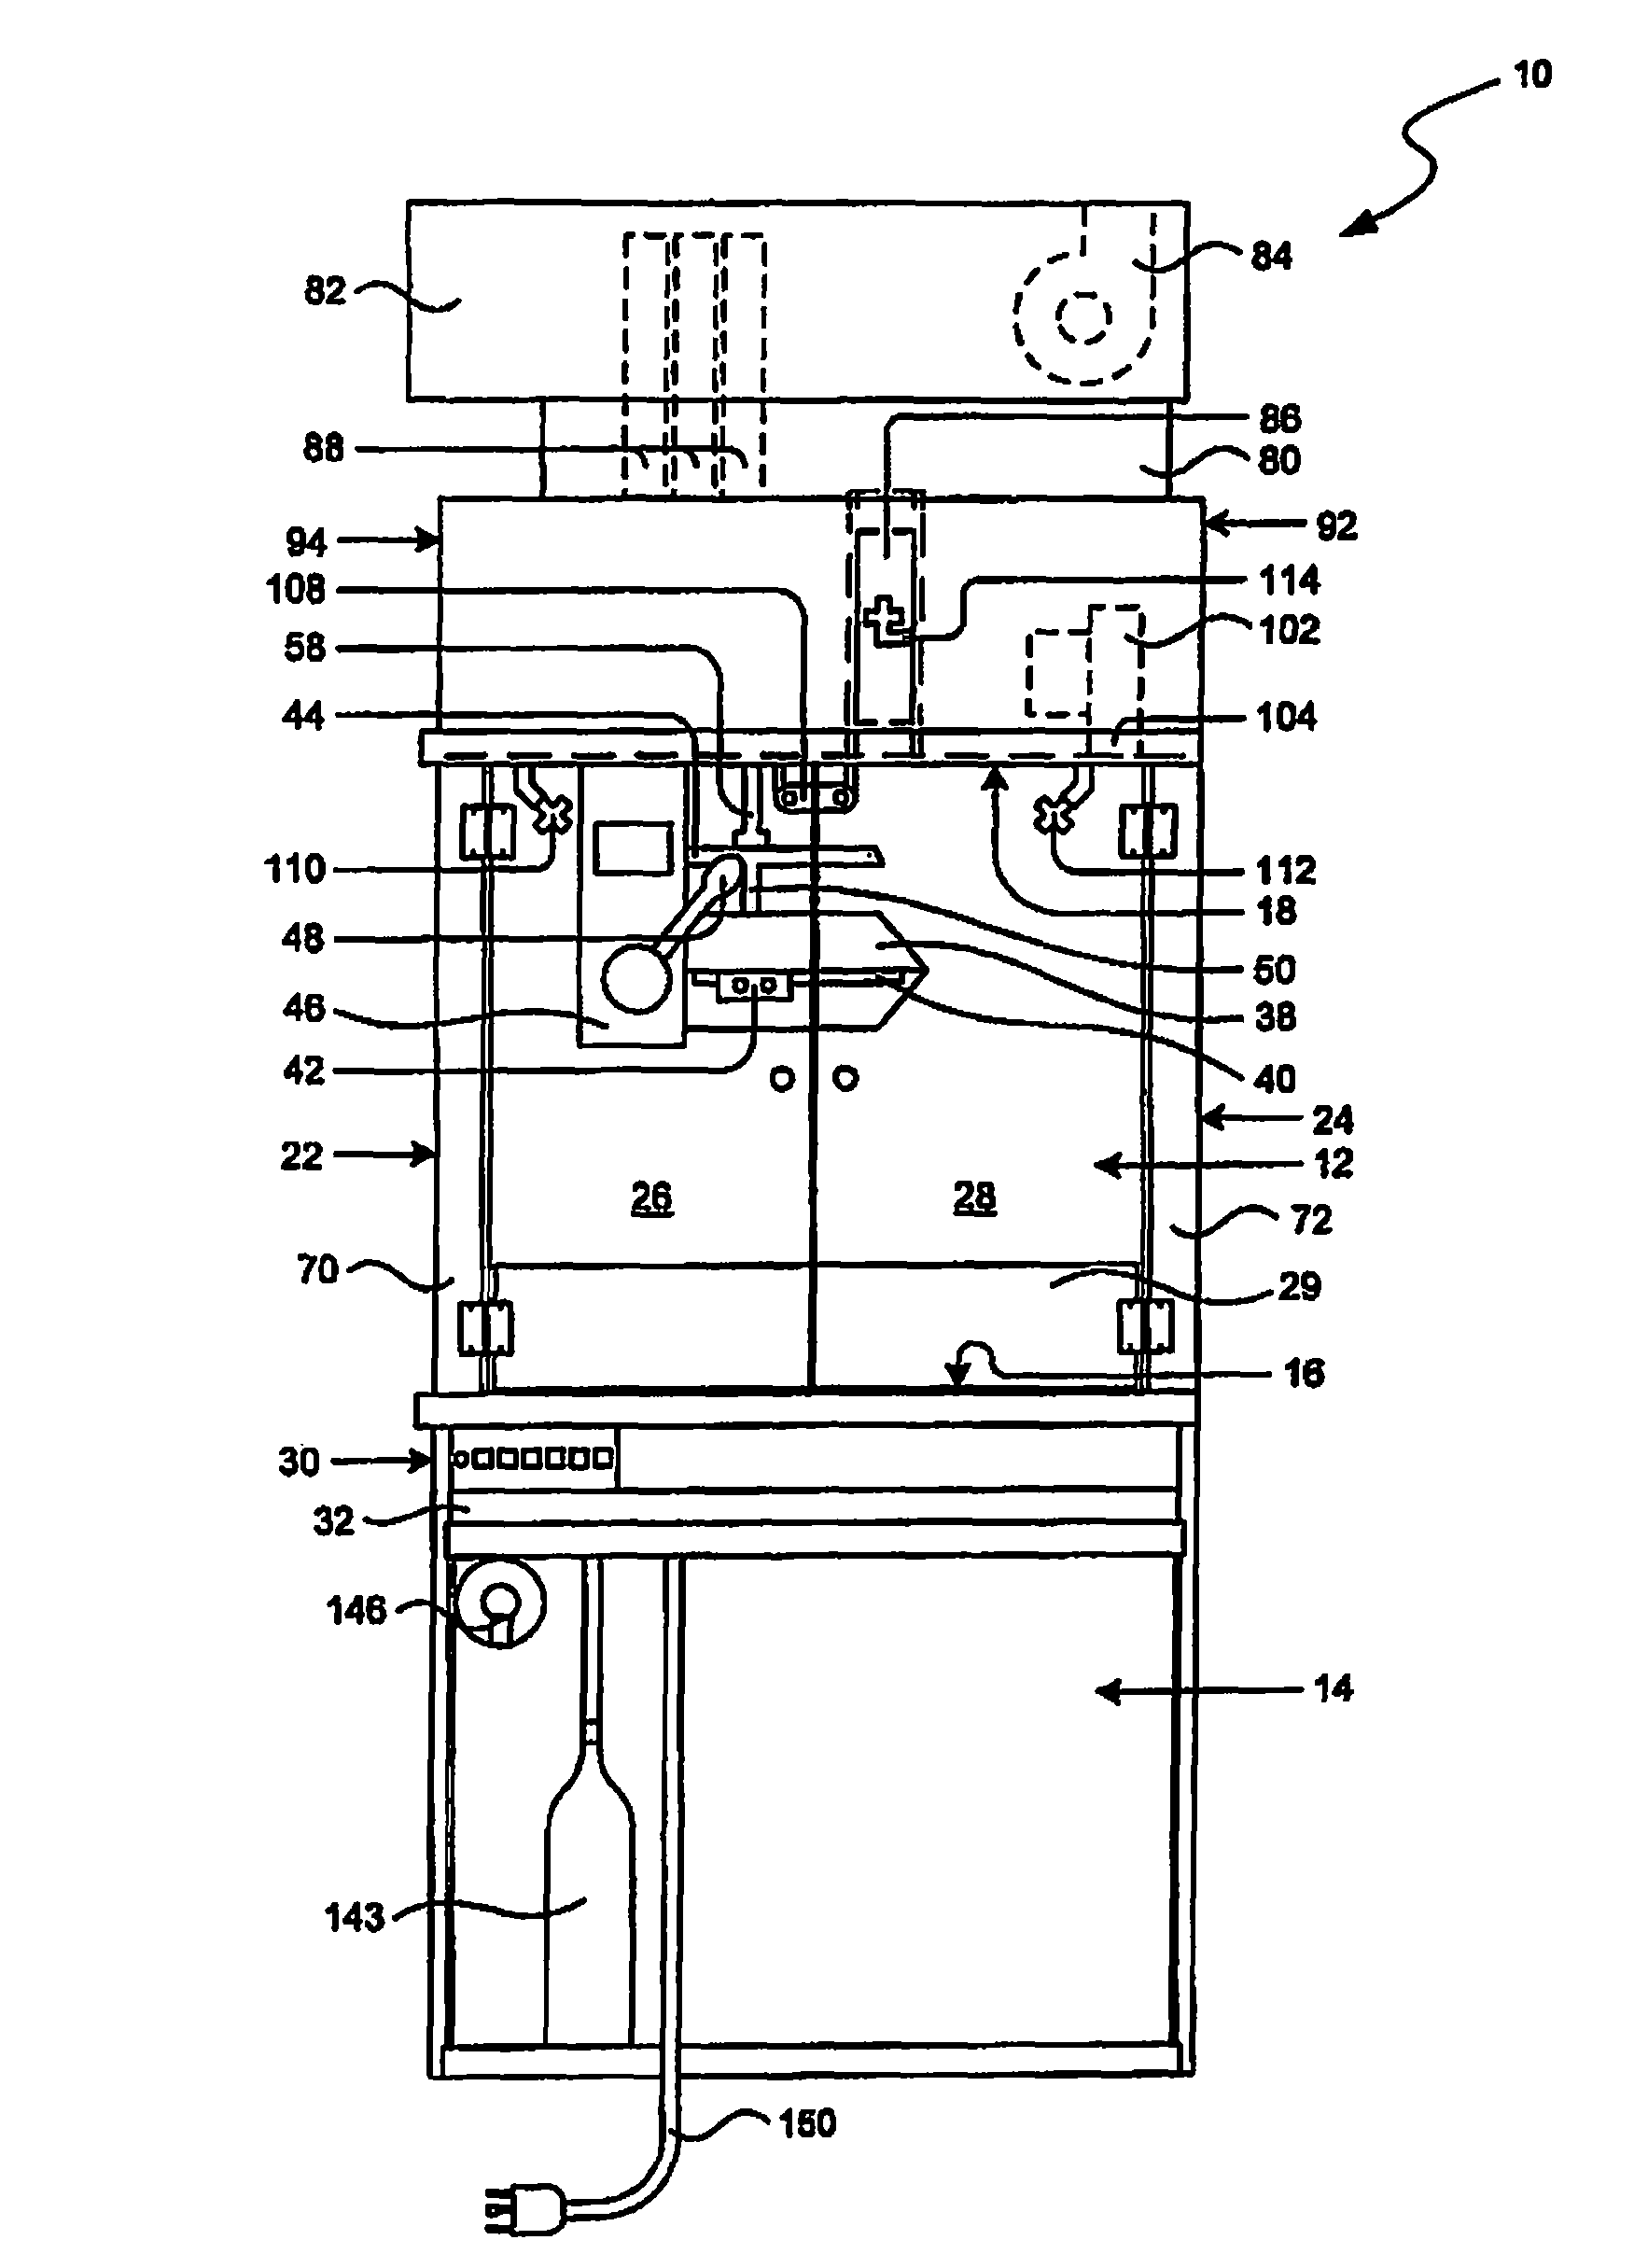 Patent Us8651014 - Fire Containment System